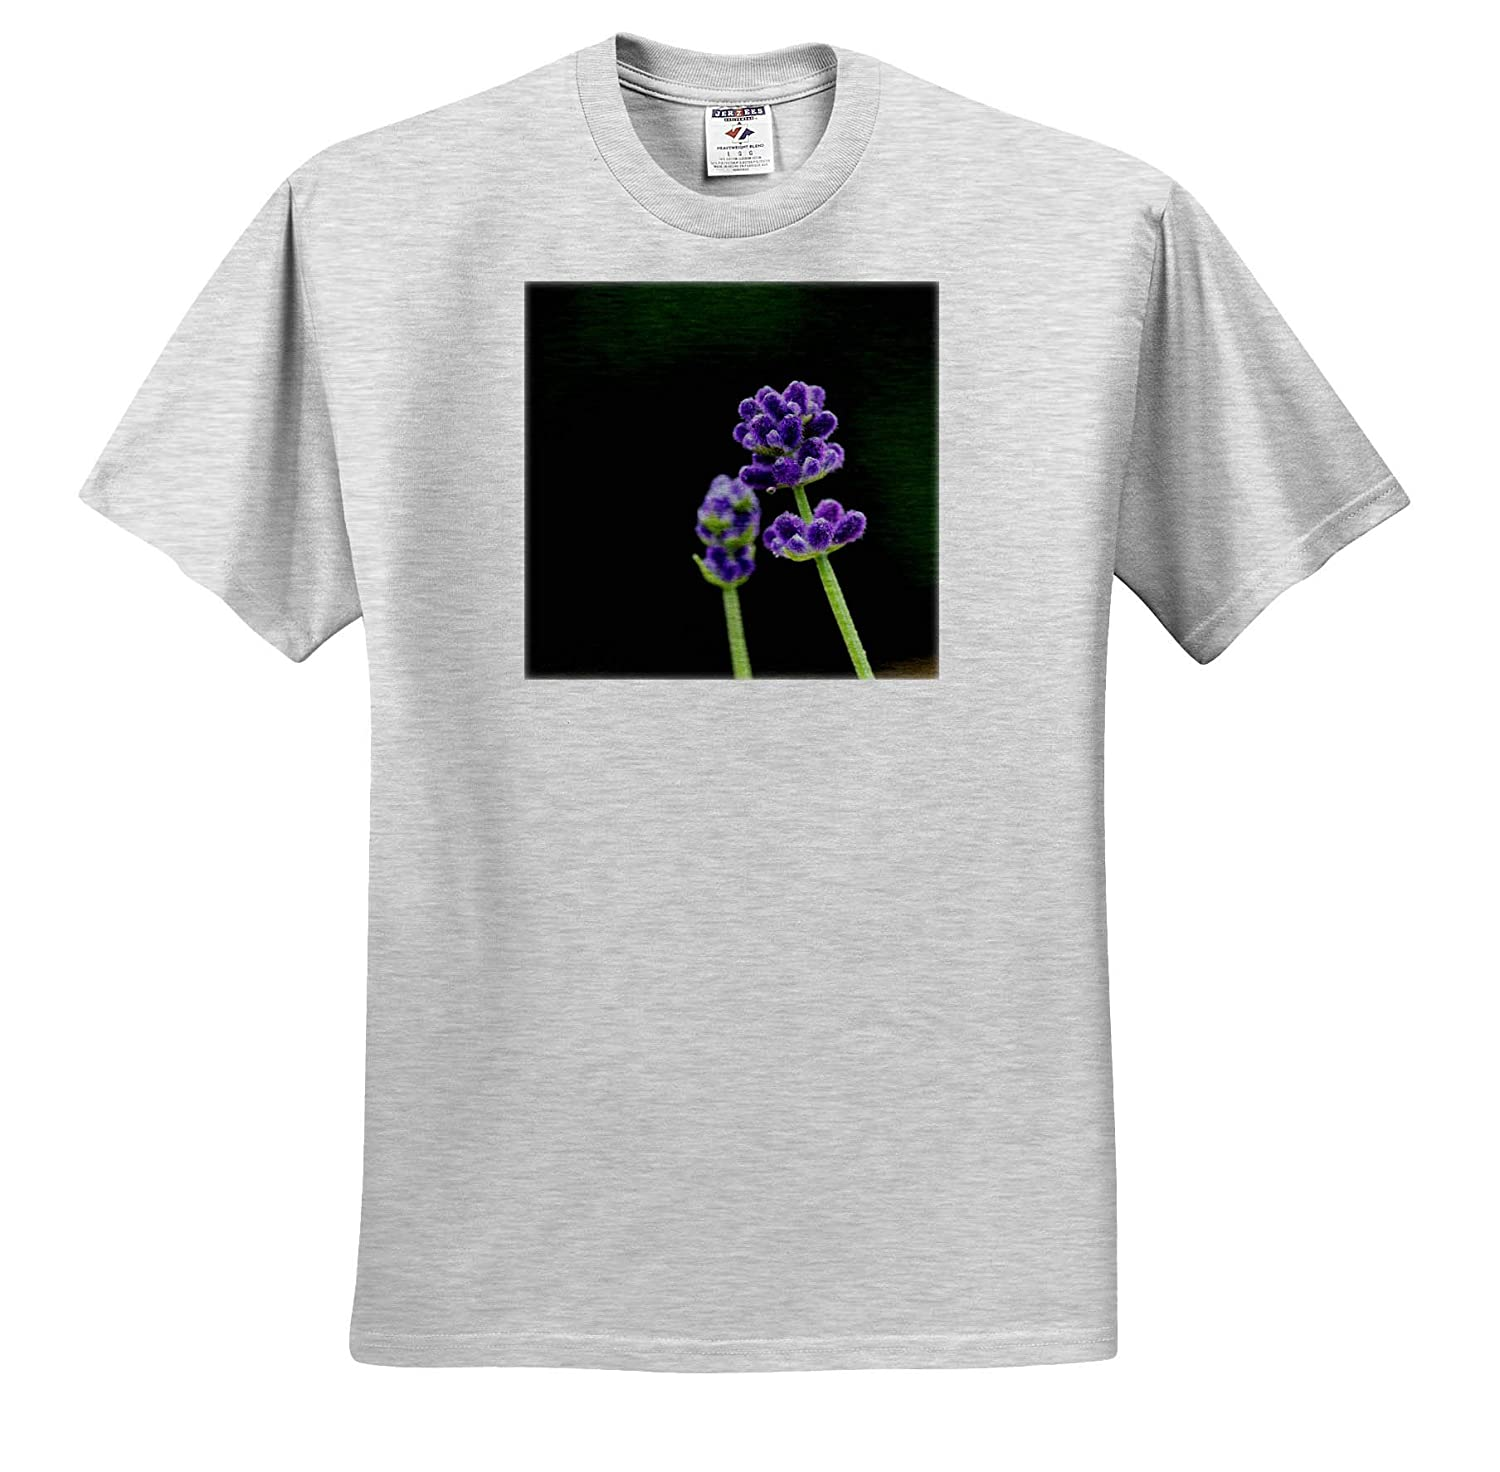 Macro Photograph of Lavender Flowers in Bloom 3dRose Stamp City Flowers ts/_316754 - Adult T-Shirt XL